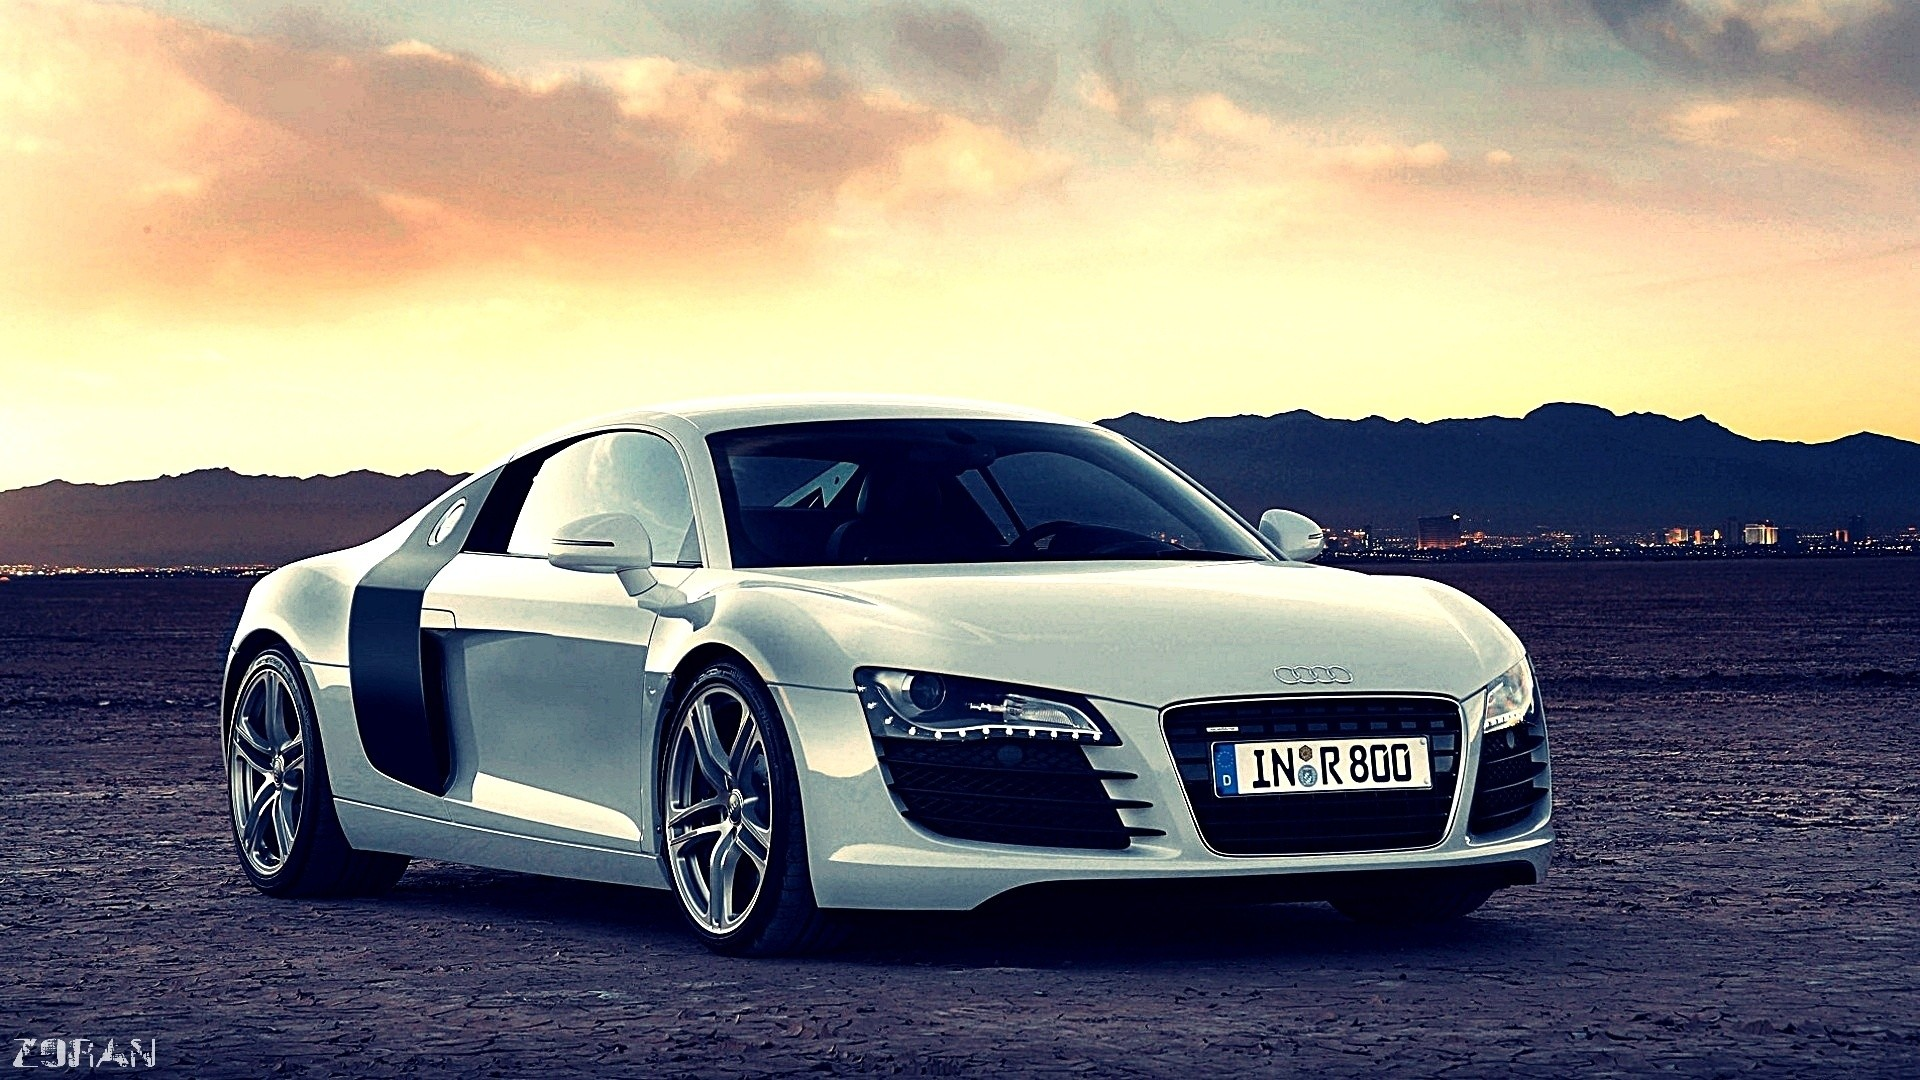 Hd Car Wallpapers 1920x1080 62 Images